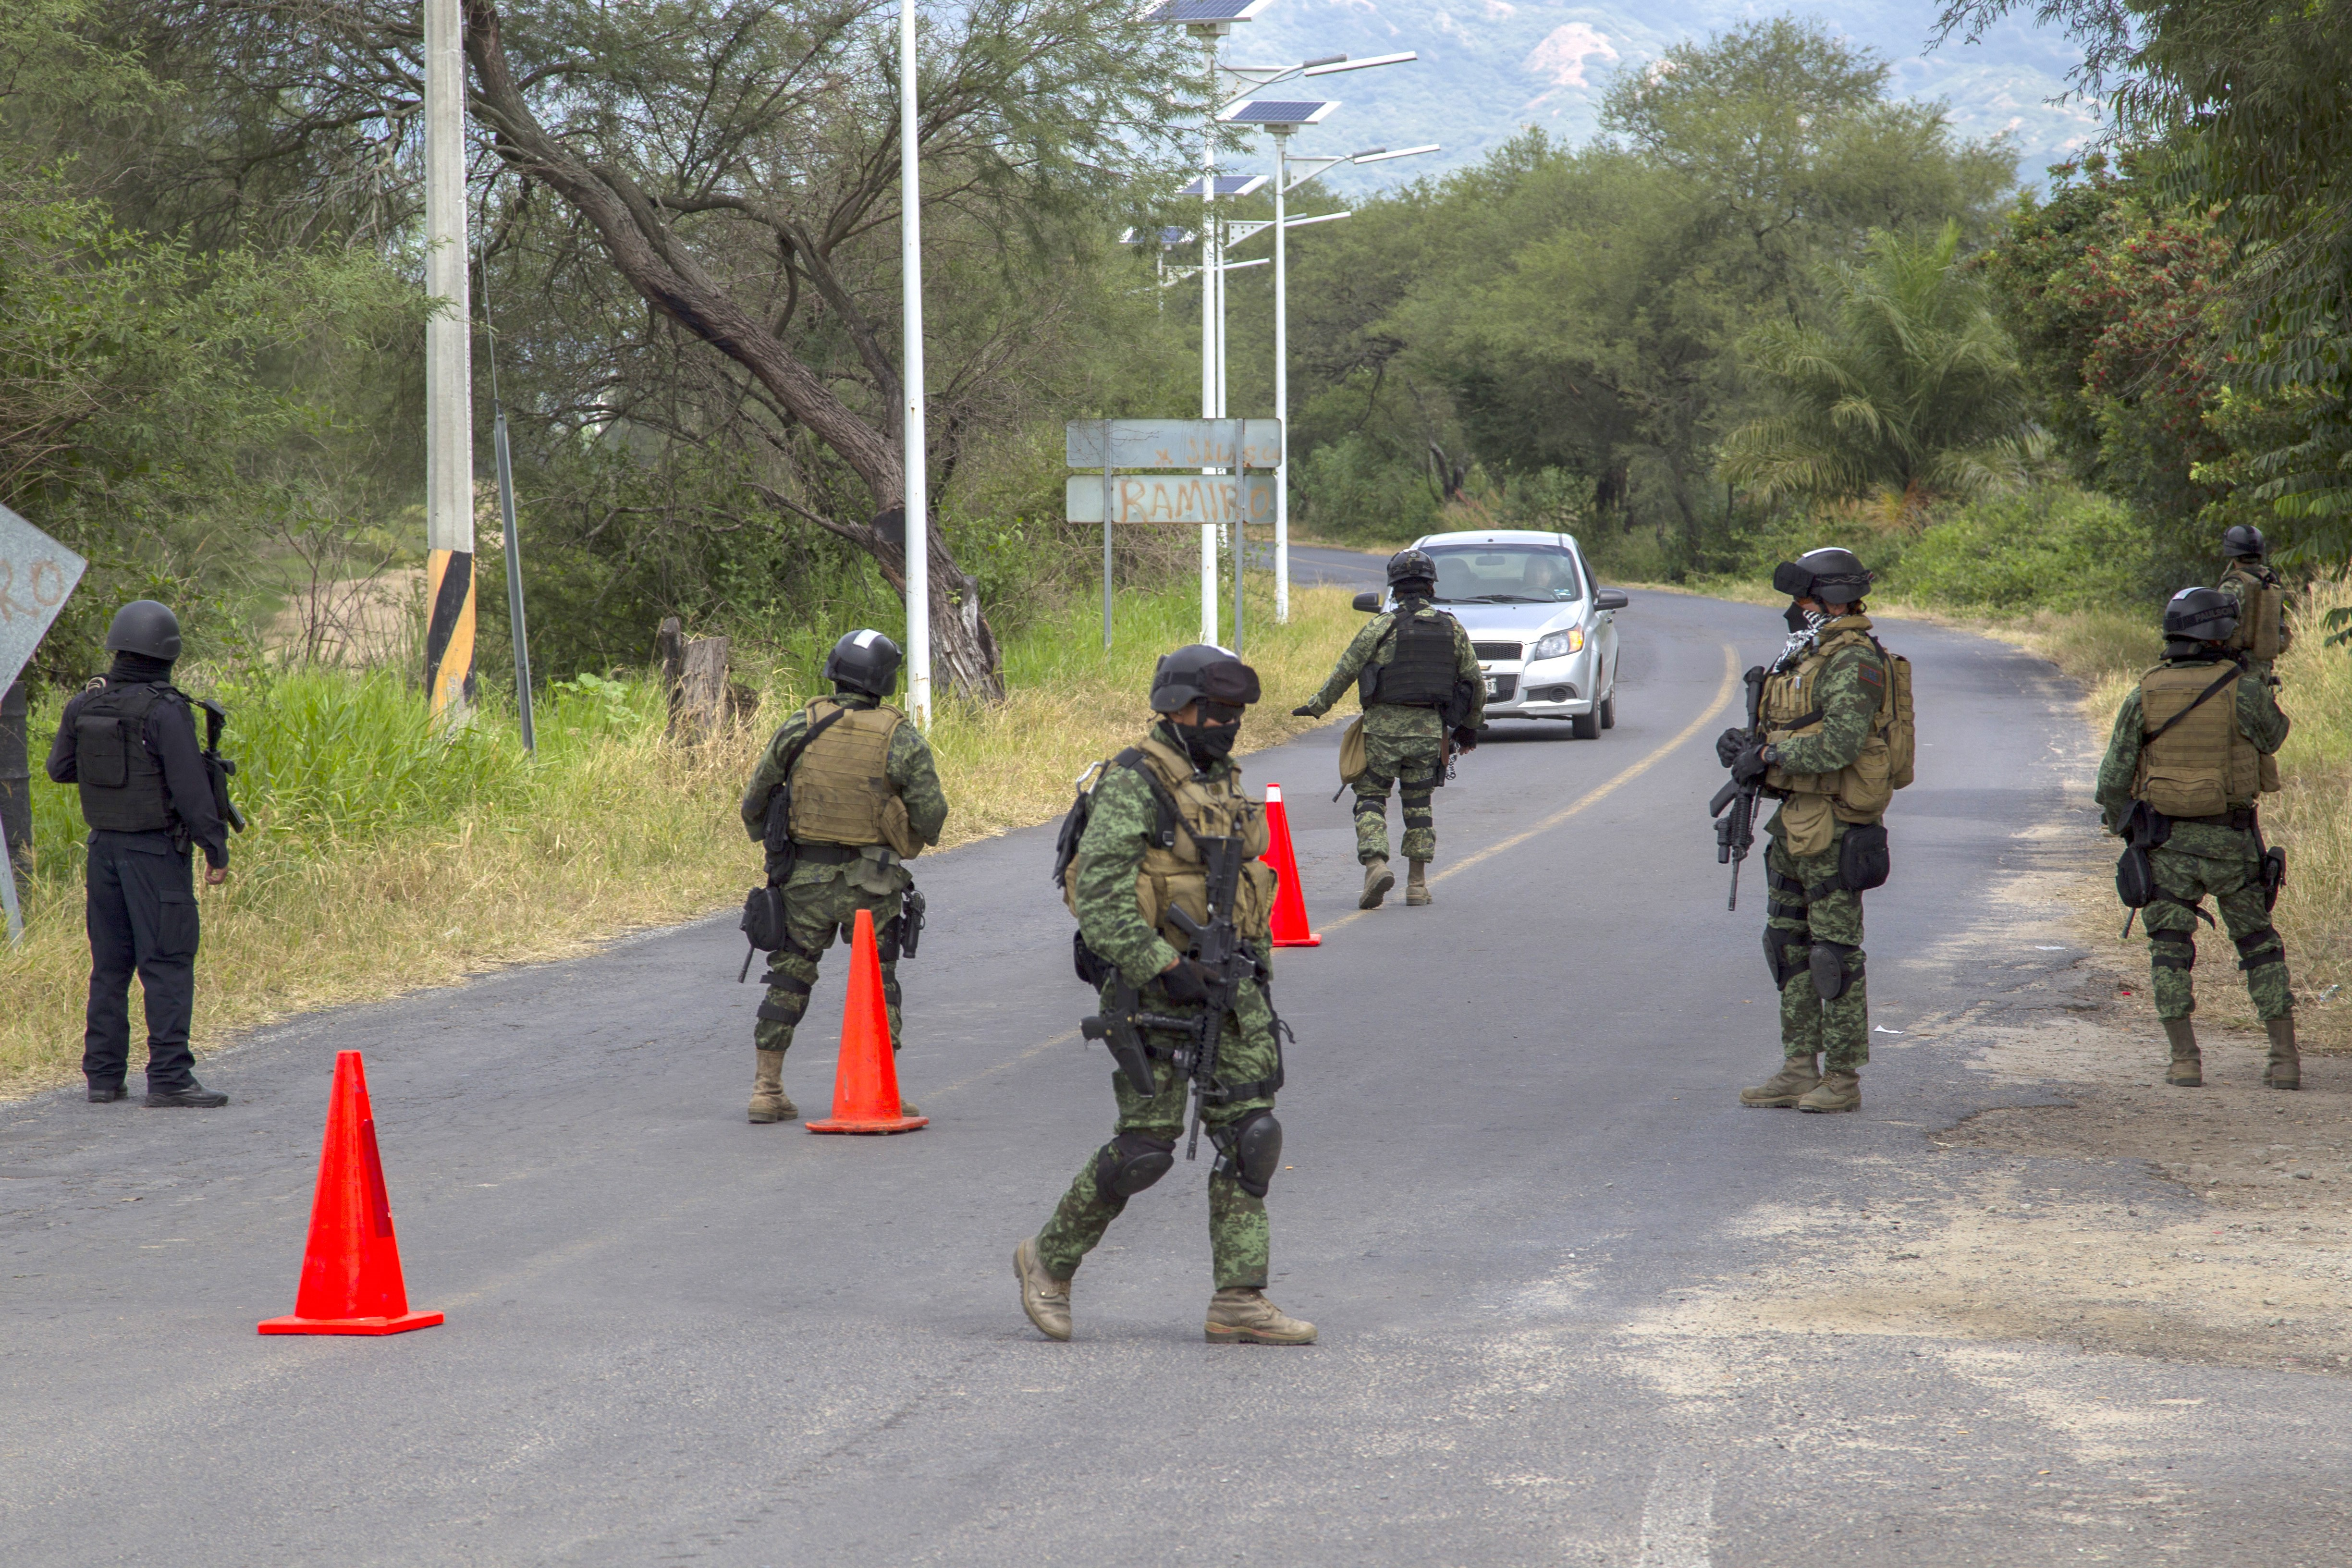 Mexican special forces man a checkpoint in San Antonio Matute, Jalisco State, Mexico on September 22, 2015 after a clash with gangs. AFP PHOTO/HECTOR GUERRERO        (Photo credit should read HECTOR GUERRERO/AFP/Getty Images)